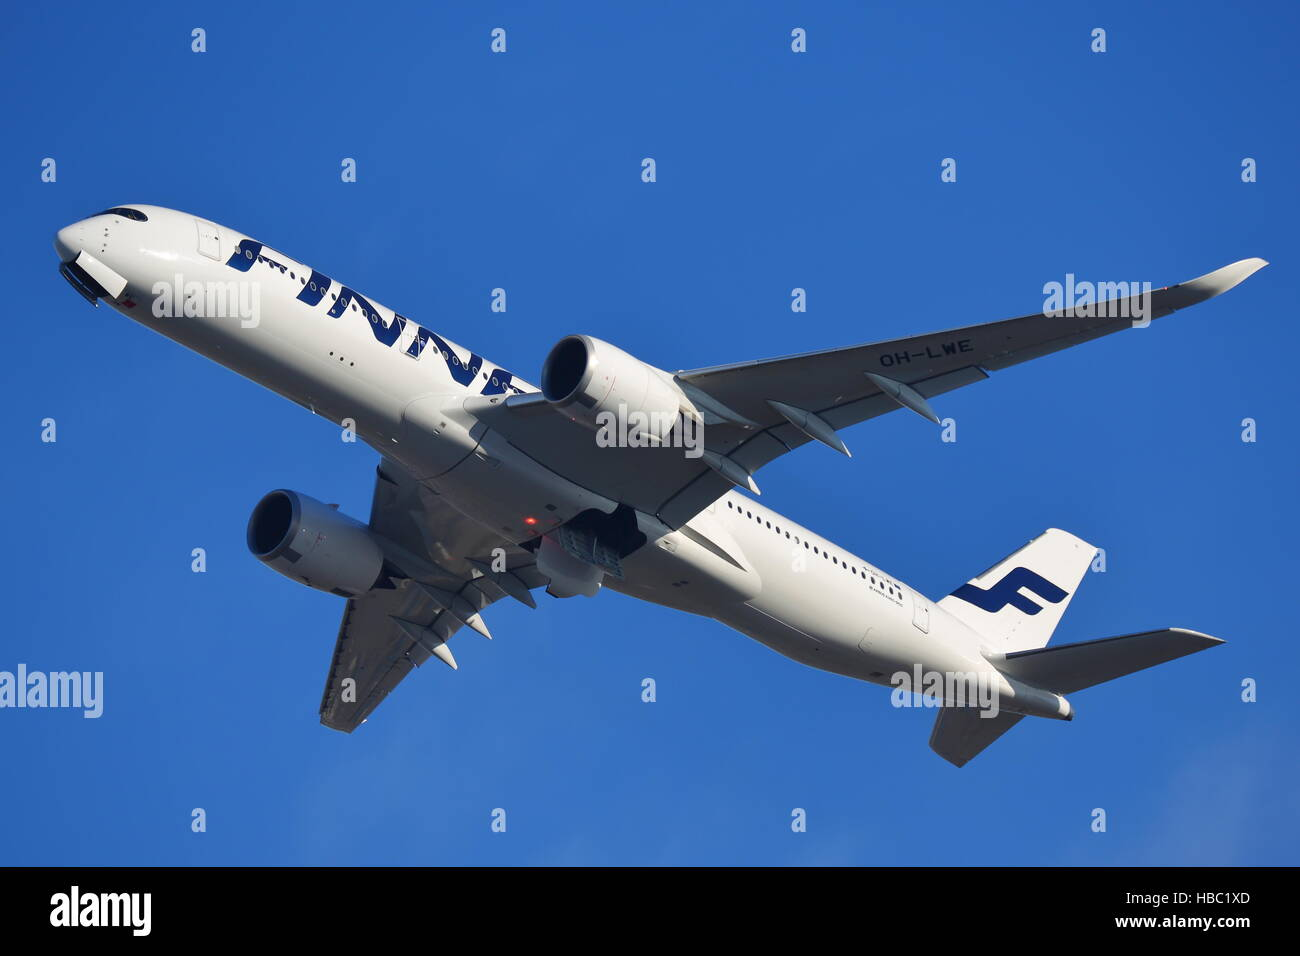 Finnair Airbus A350-900 OH-LWE departing from London Heathrow Airport, UK - Stock Image